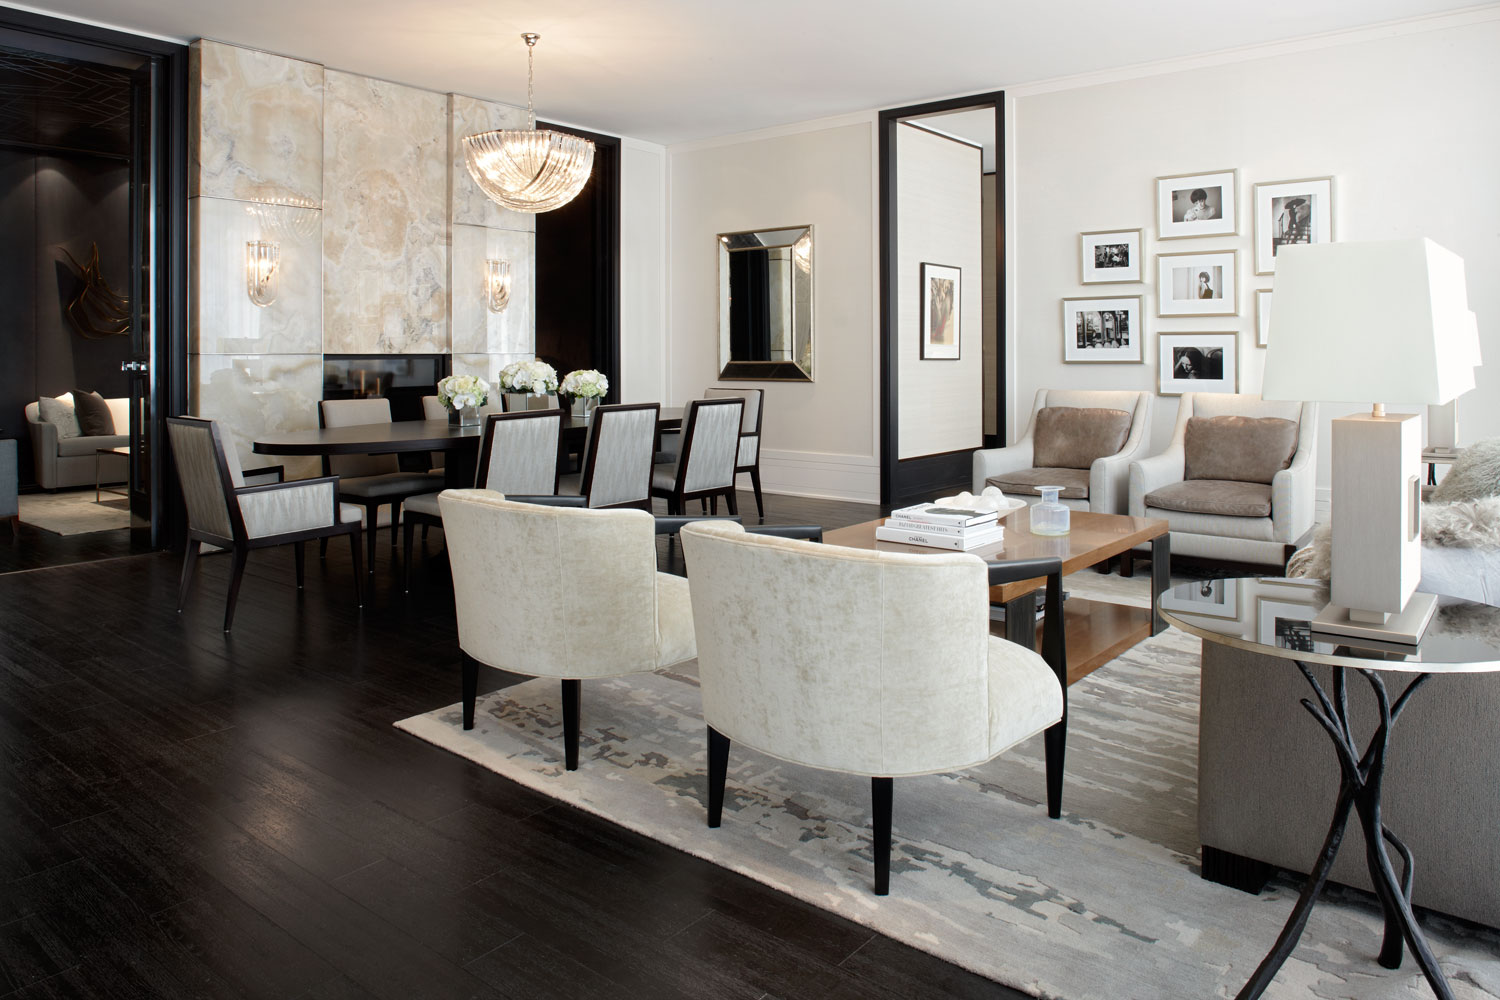 PIER 27 - TWO BED FOR SALE - CONTACT YOSSI KAPLAN